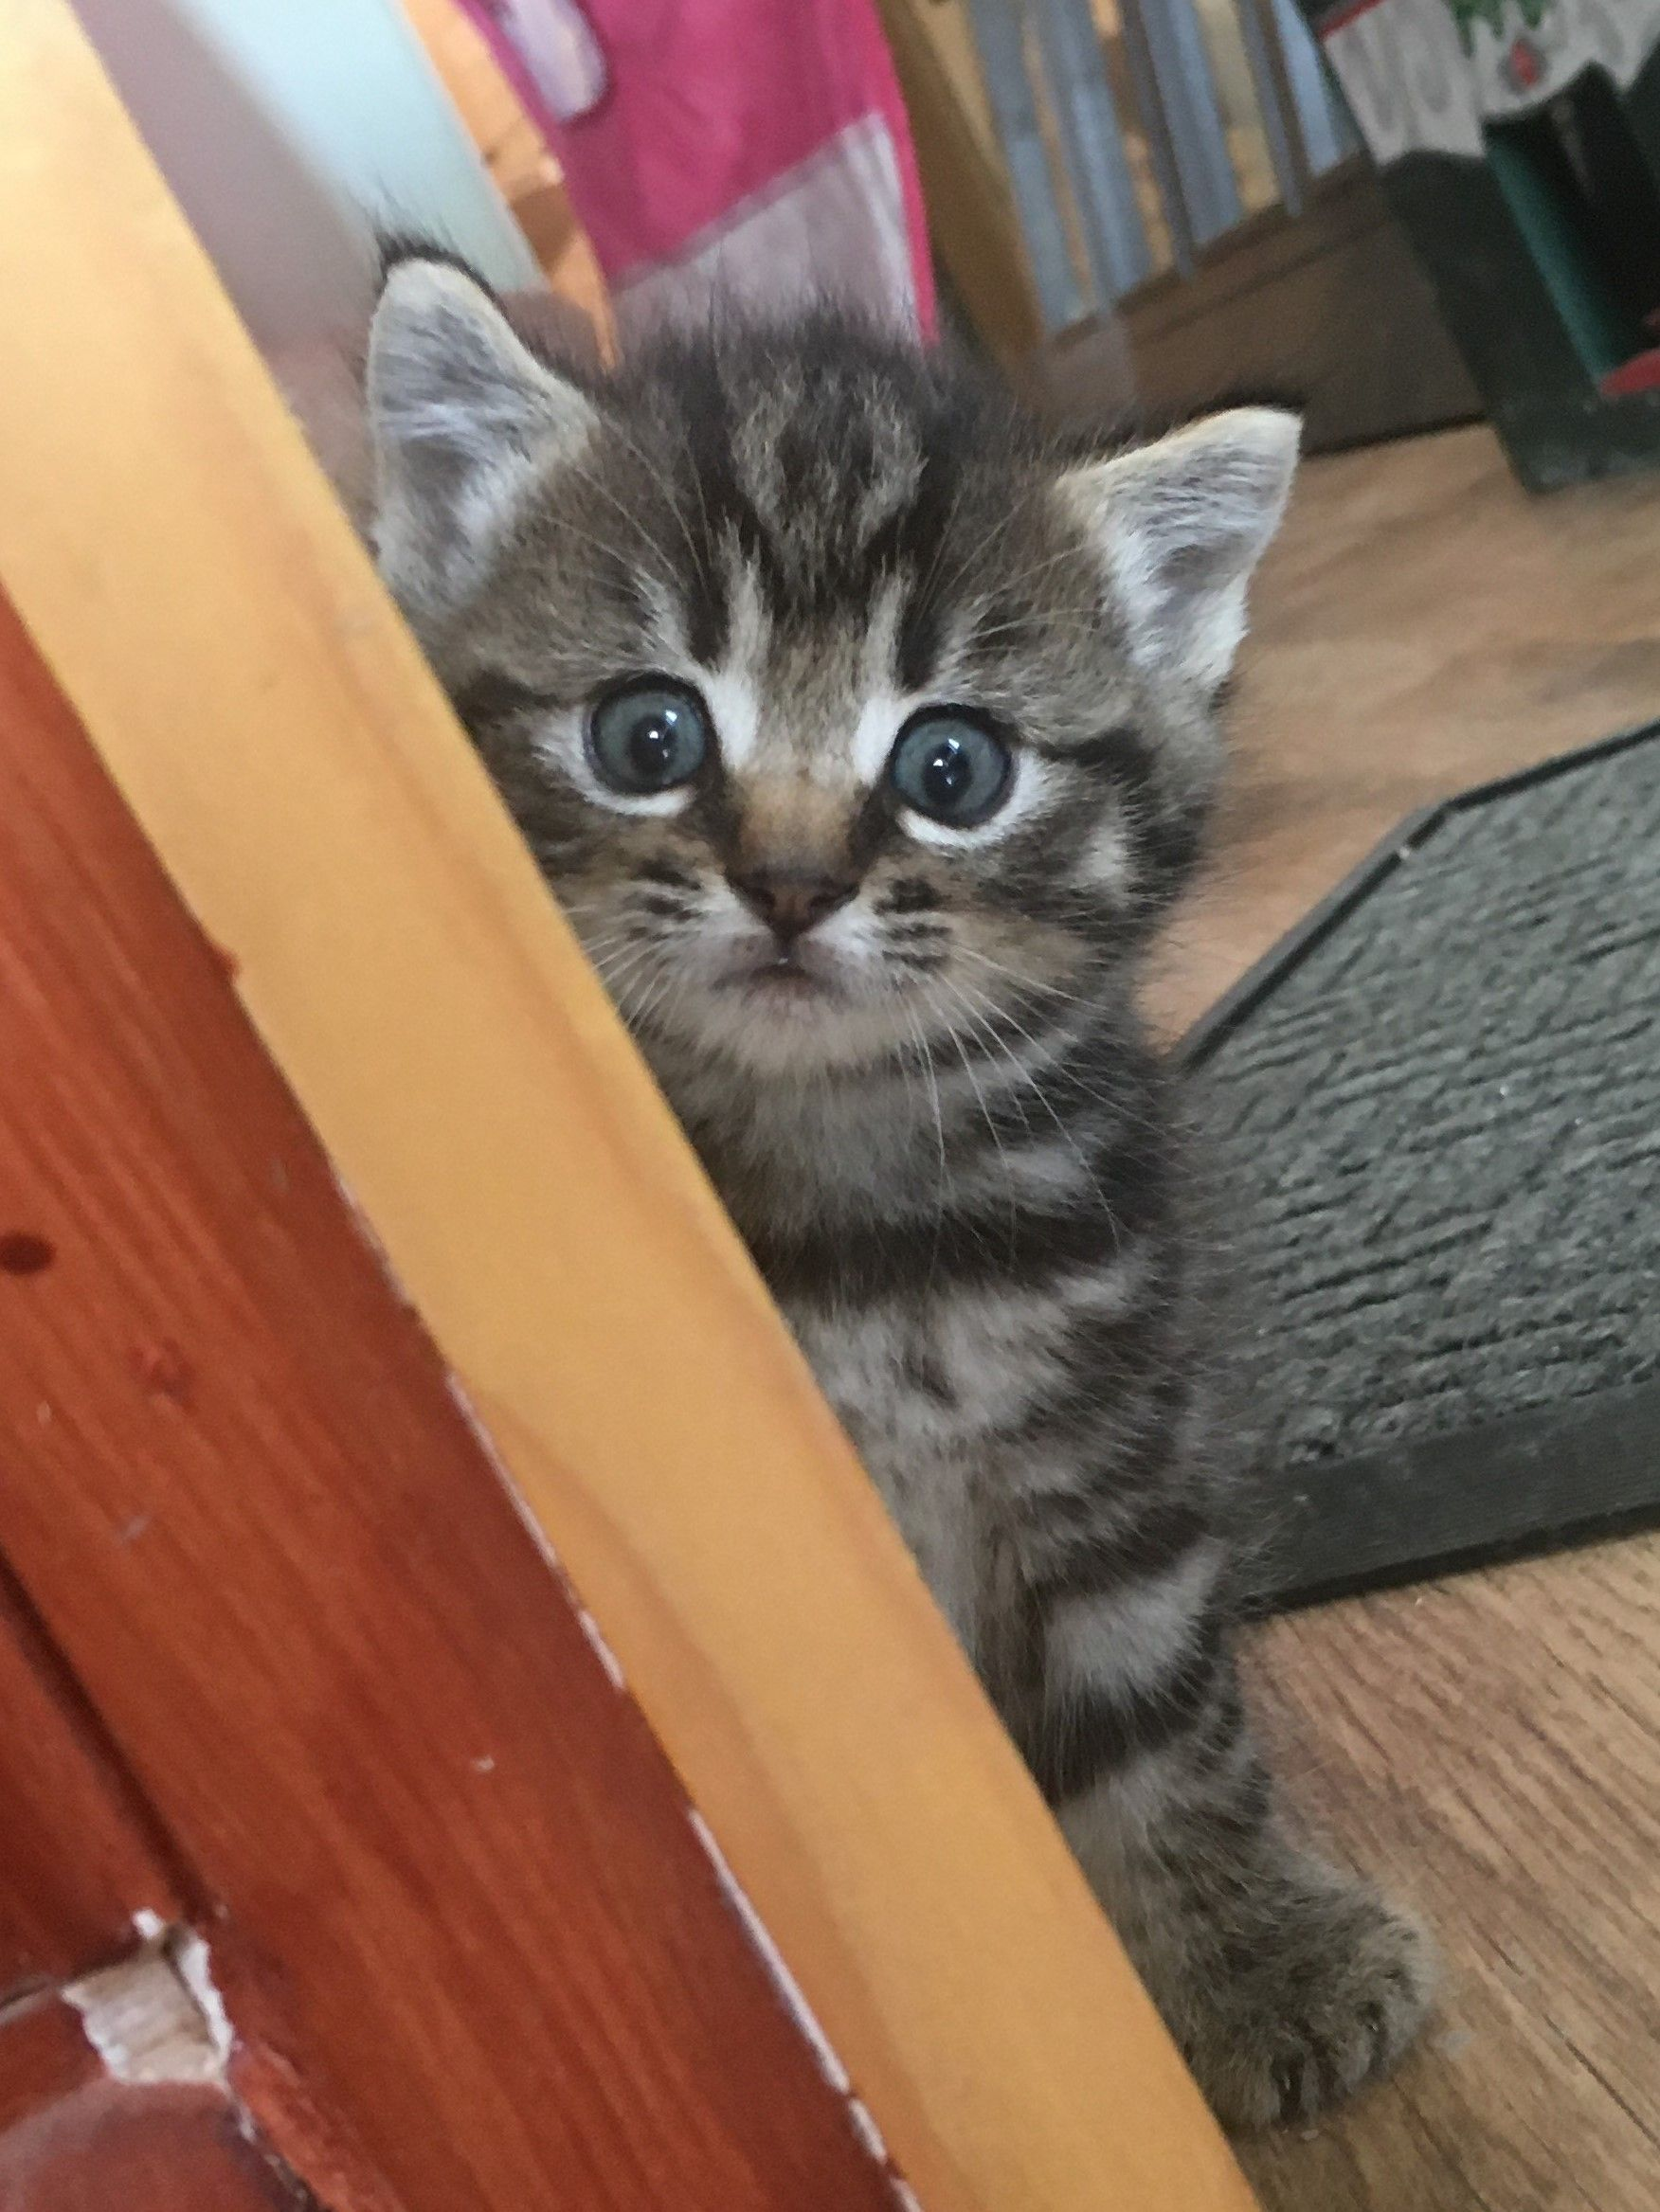 Boo Our Very Cute Kitten Discover The Story Of Misty And Boo At Littlemisscat Com Kittens Cutest Kittens Cat Lovers